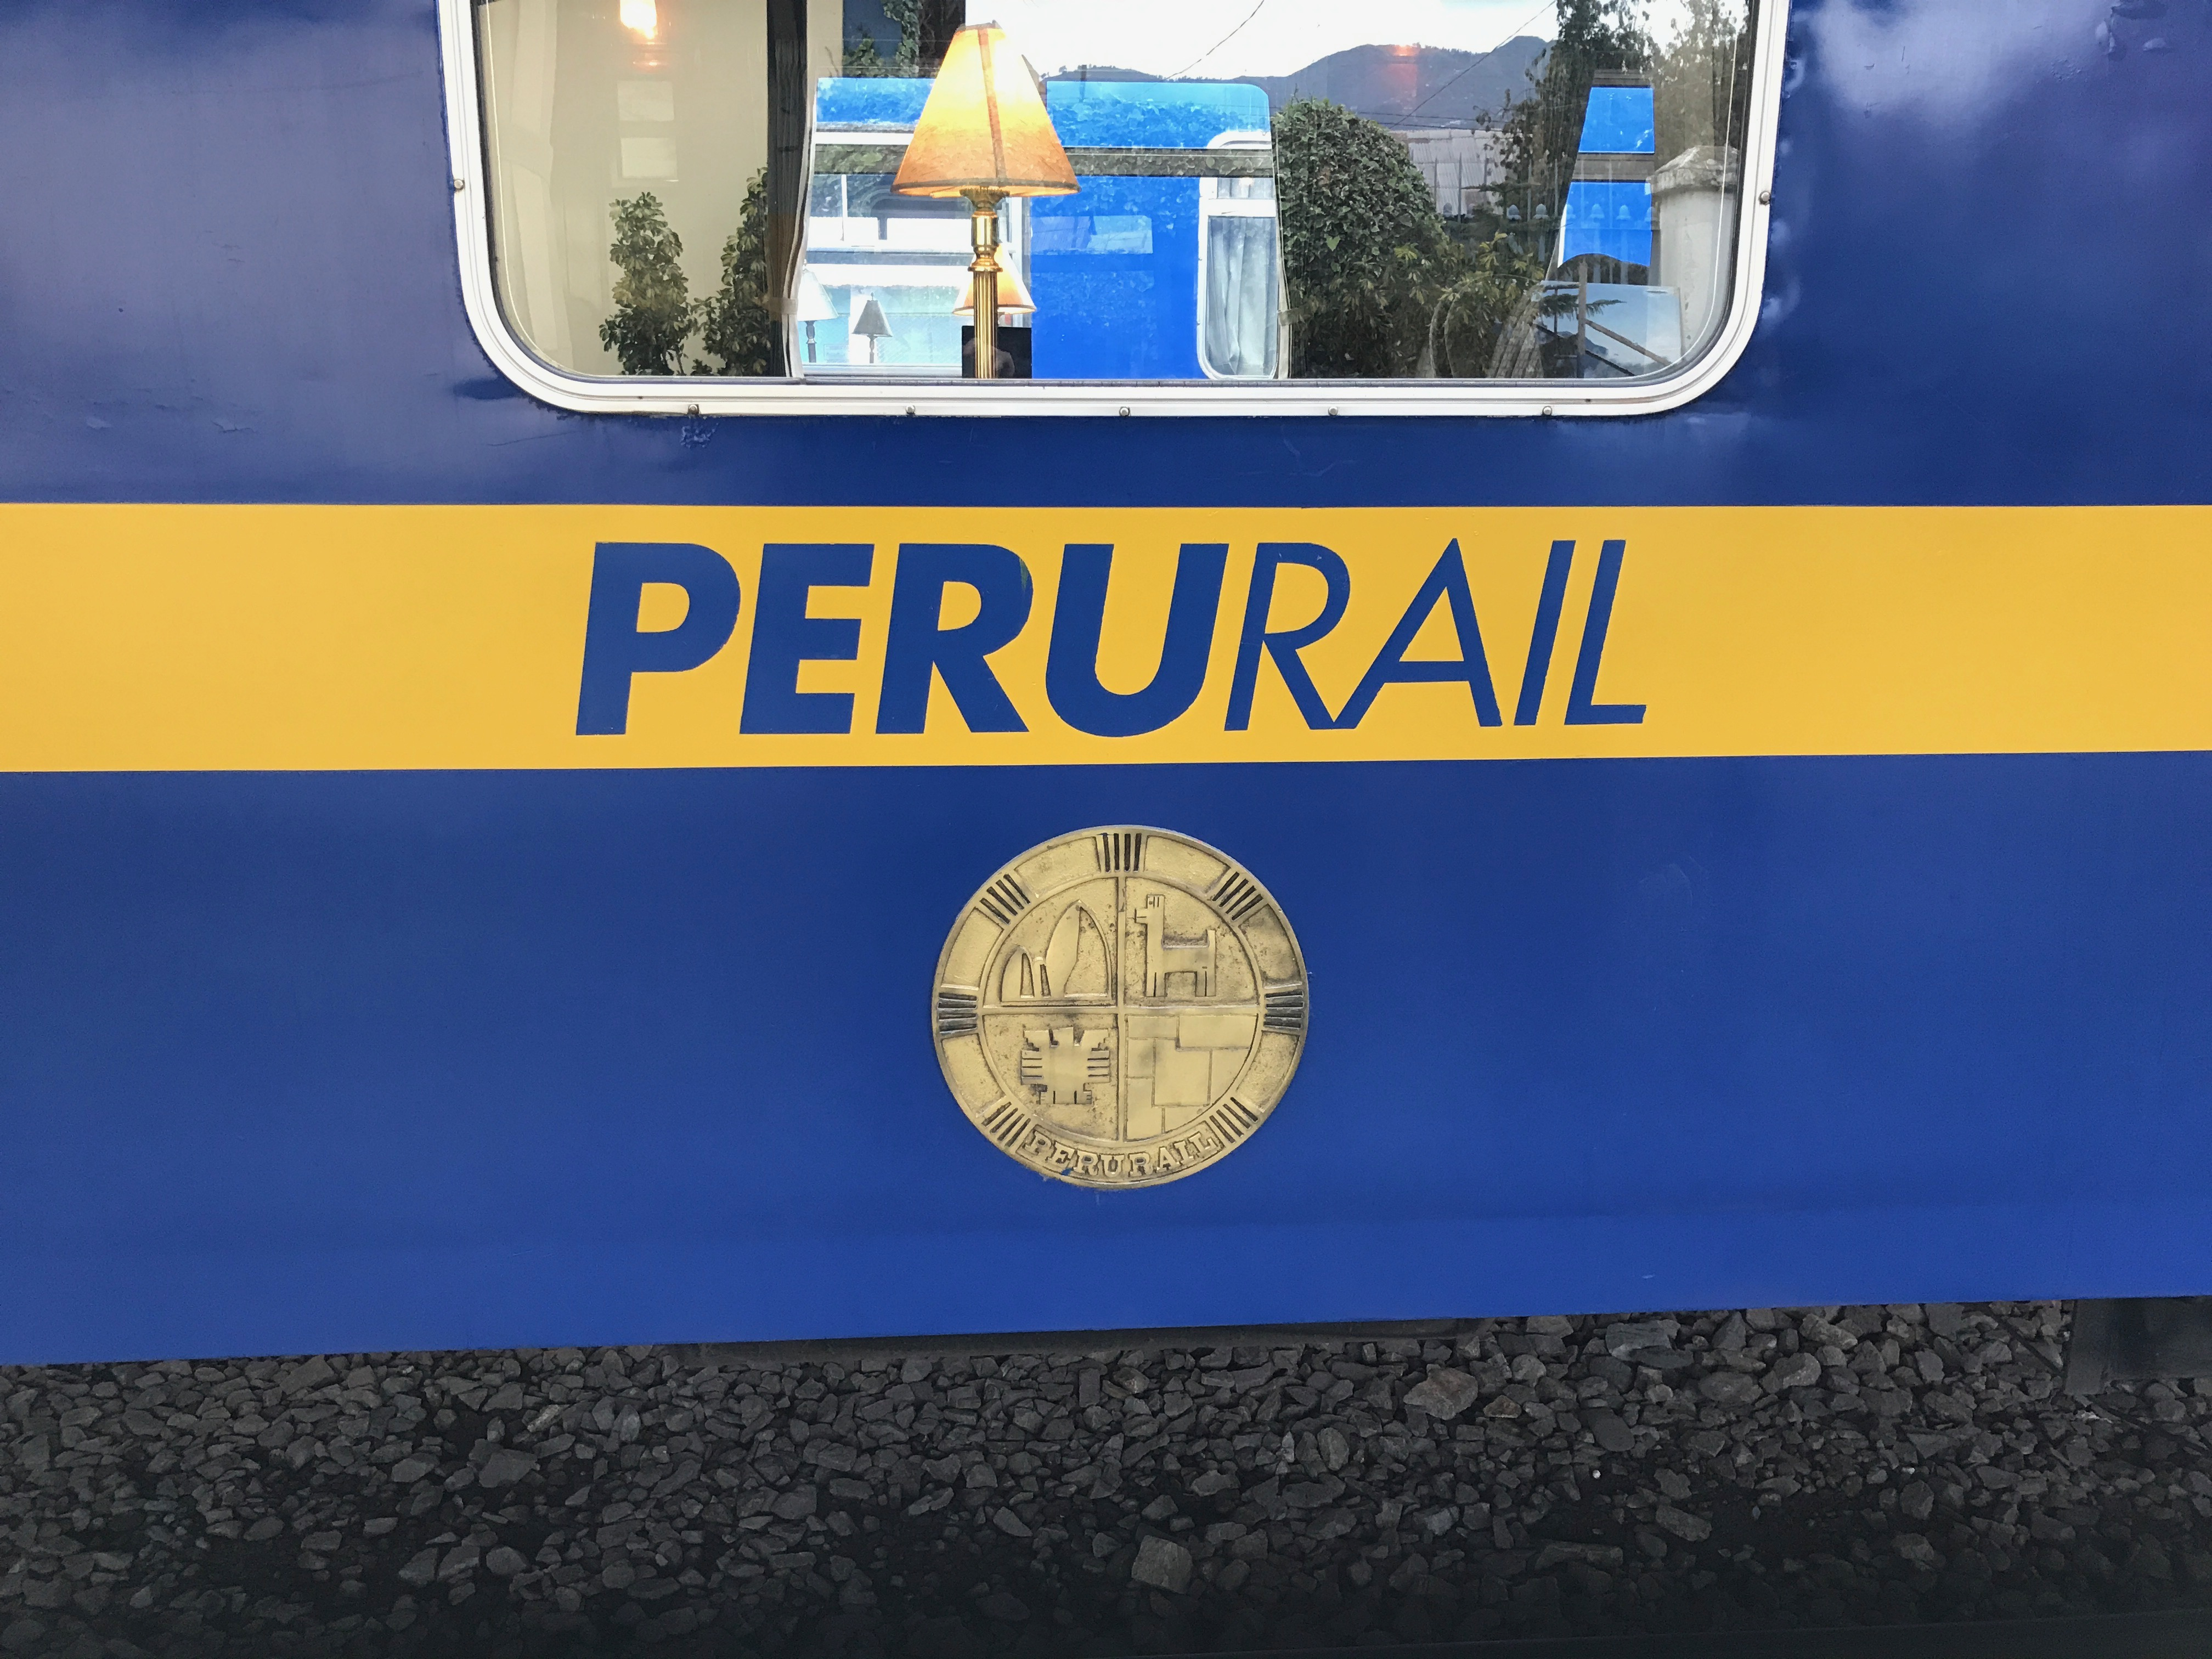 Perurail carriage